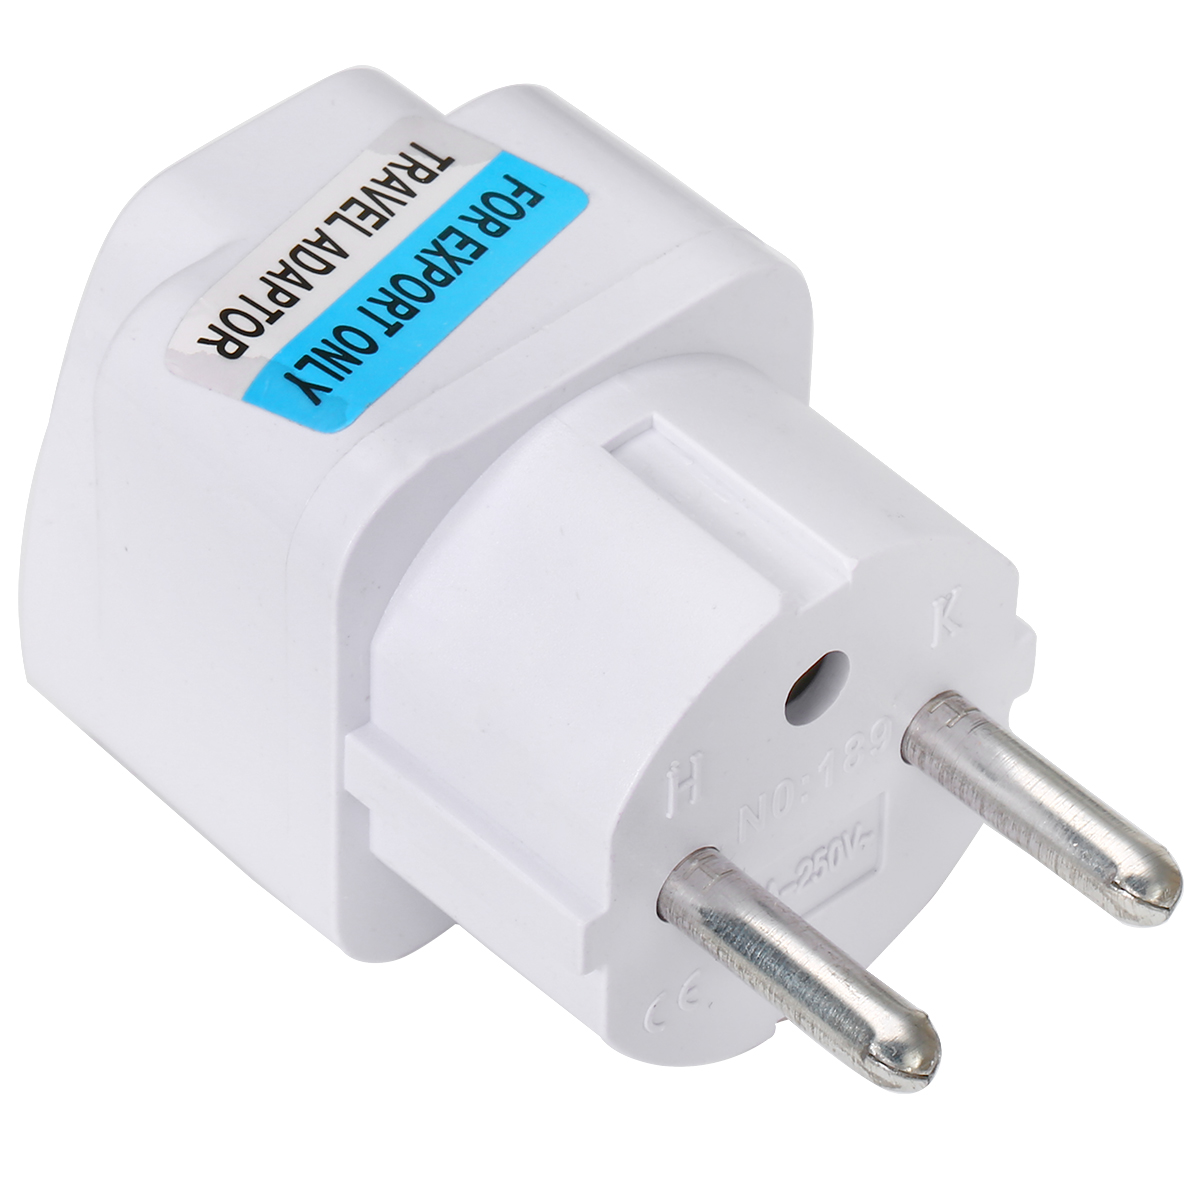 1pc UK US <font><b>AU</b></font> To <font><b>EU</b></font> <font><b>Adapters</b></font> Protable Universal European Charger Power Socket Plug <font><b>Adapter</b></font> Travel Converter New image